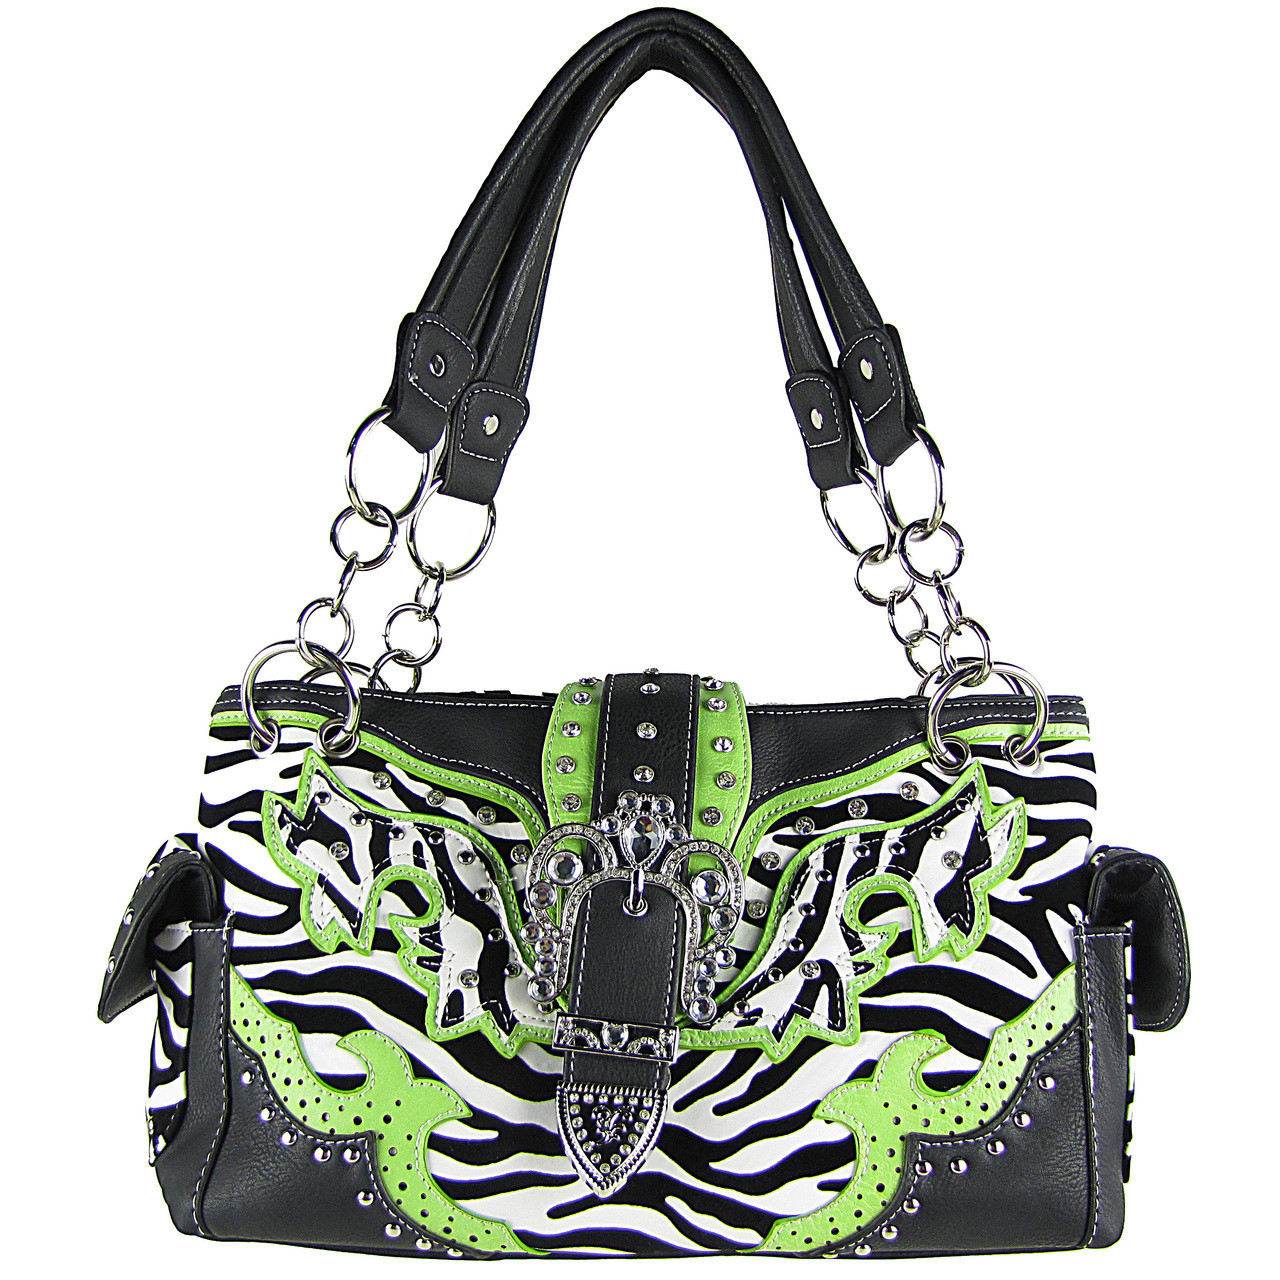 GREEN ZEBRA STUDDED BUCKLE RHINESTONE LOOK SHOULDER HANDBAG HB1-W37FZGRN